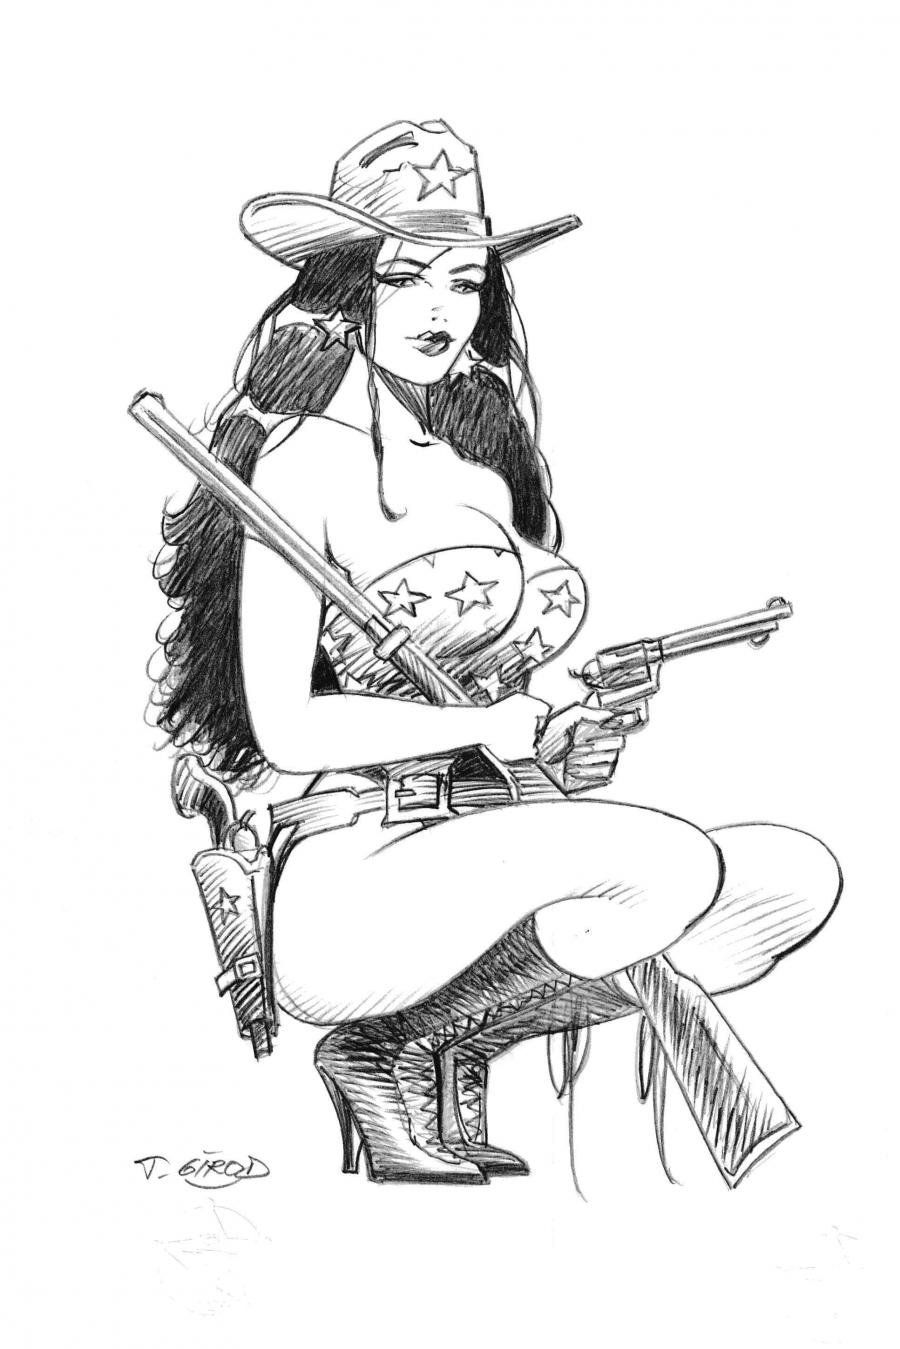 Original cover illustration of Western corset by Thierry Girod